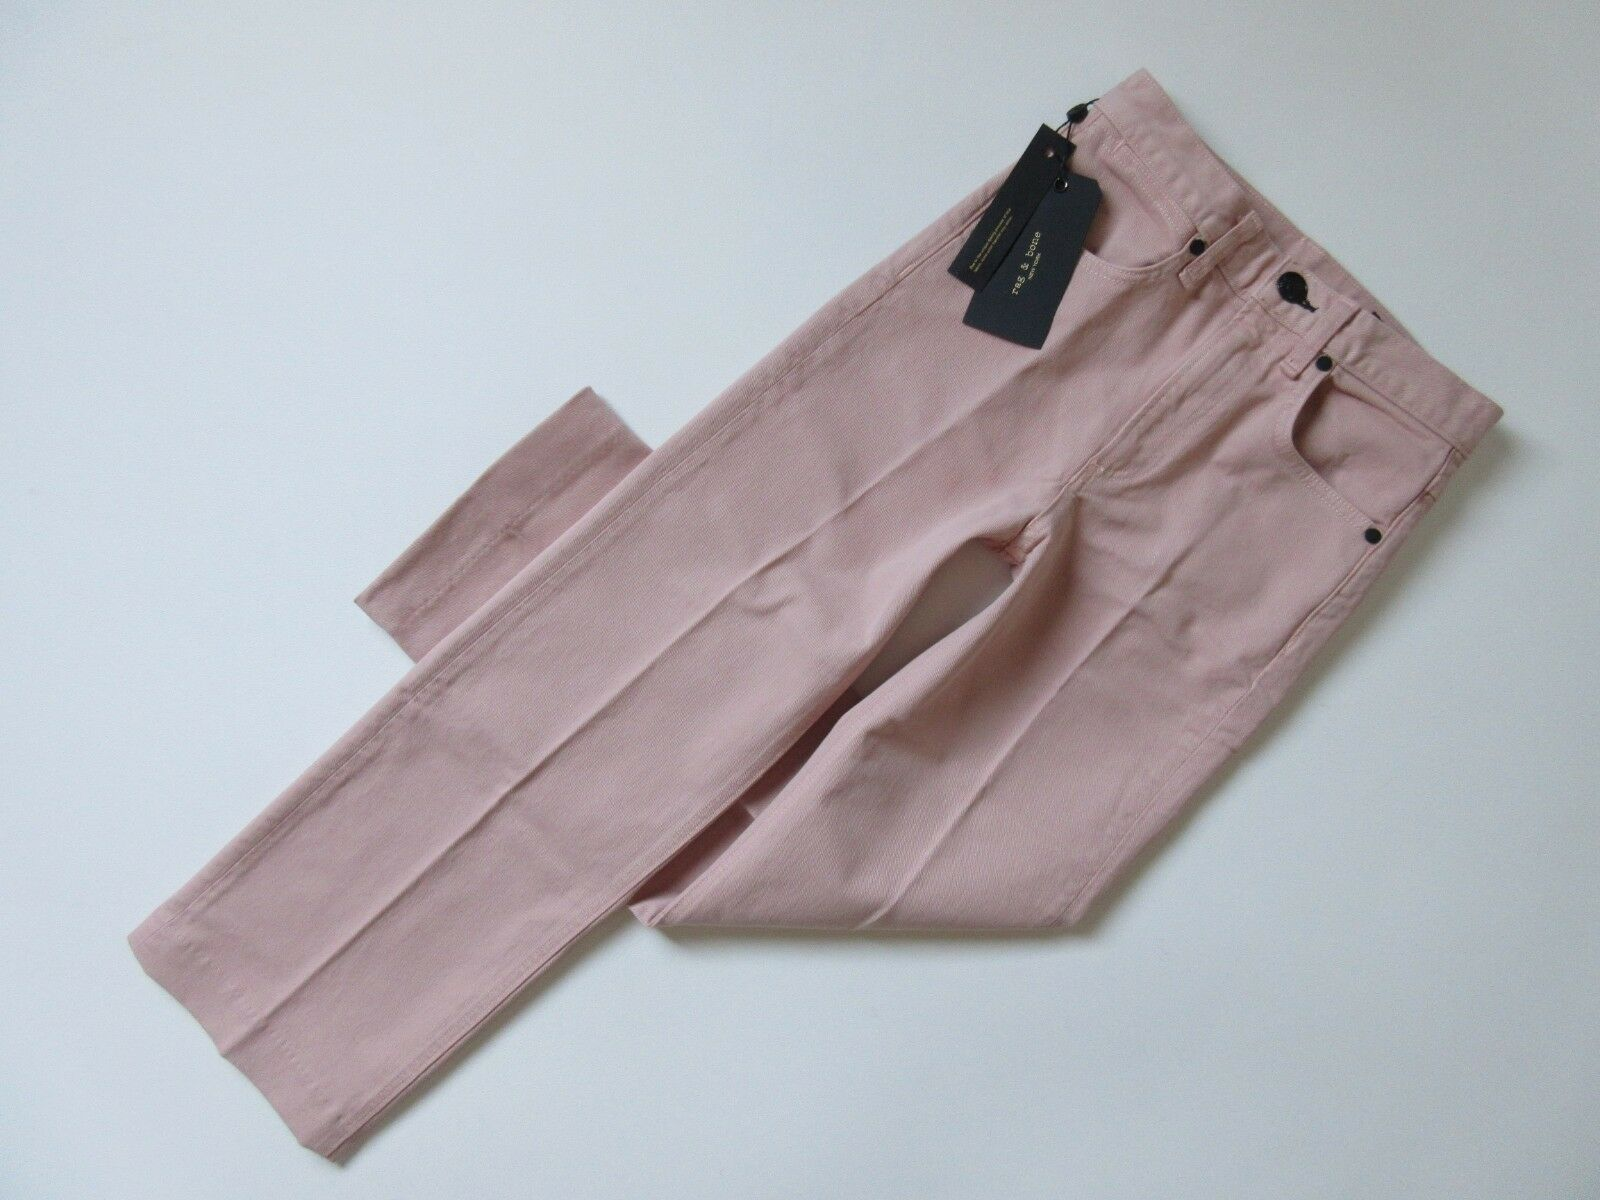 NWT Rag & Bone Justine Ankle in bluesh Pink Twill Crop Wide Leg Trouser Jeans 25